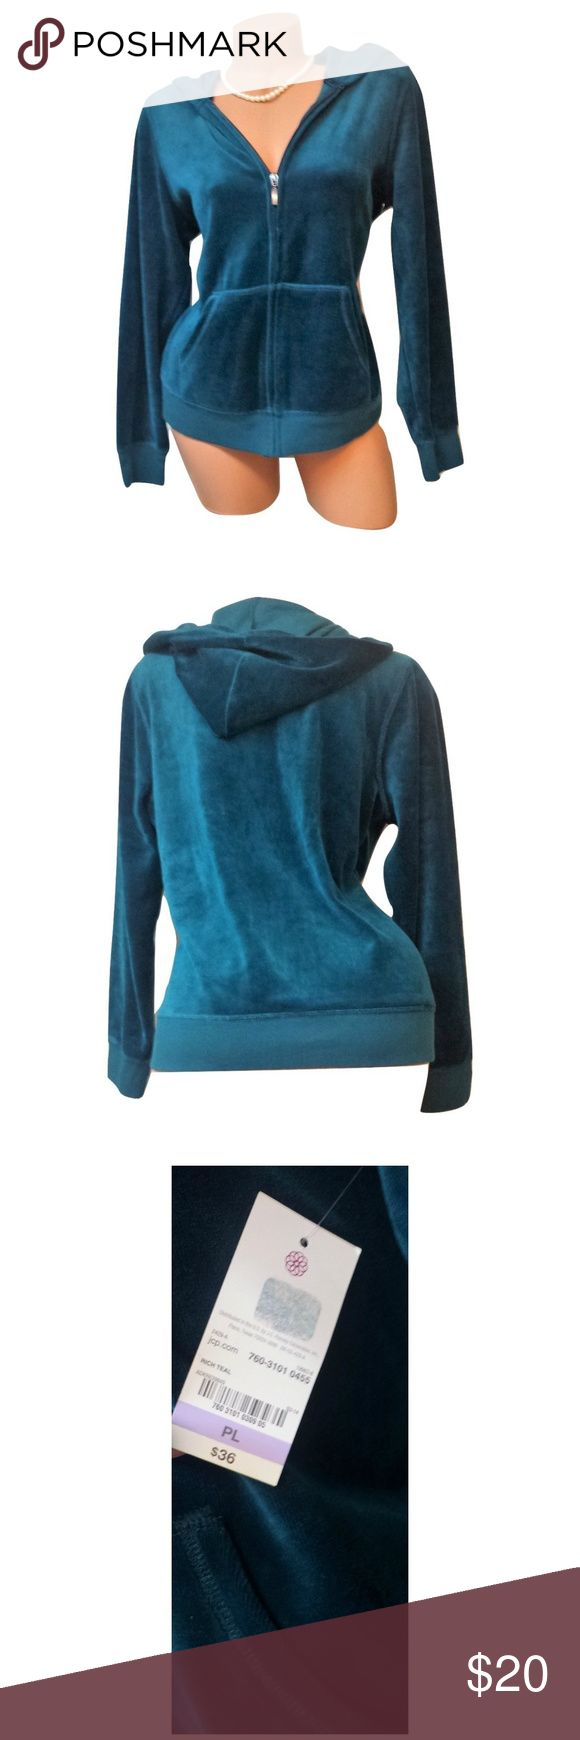 """Womens Teal Long Sleeve Zip Up Hooded Hoodie Coat Includes: 1x Made For Life Hoodie  Condition: NWT *MSRP $36  Size: Petites Large / Or Regular Medium  Color: Teal {Blue/Green}  Sleeve Style: Long Sleeves  Design Features: Zip Up / 2x Pockets / Hooded  Length: 24""""  Bust (armpit to armpit): 19""""  Inseam (armpit to bottom hem): 14""""  Material: 80% Cotton 20% Polyester Made For Life Jackets & Coats"""